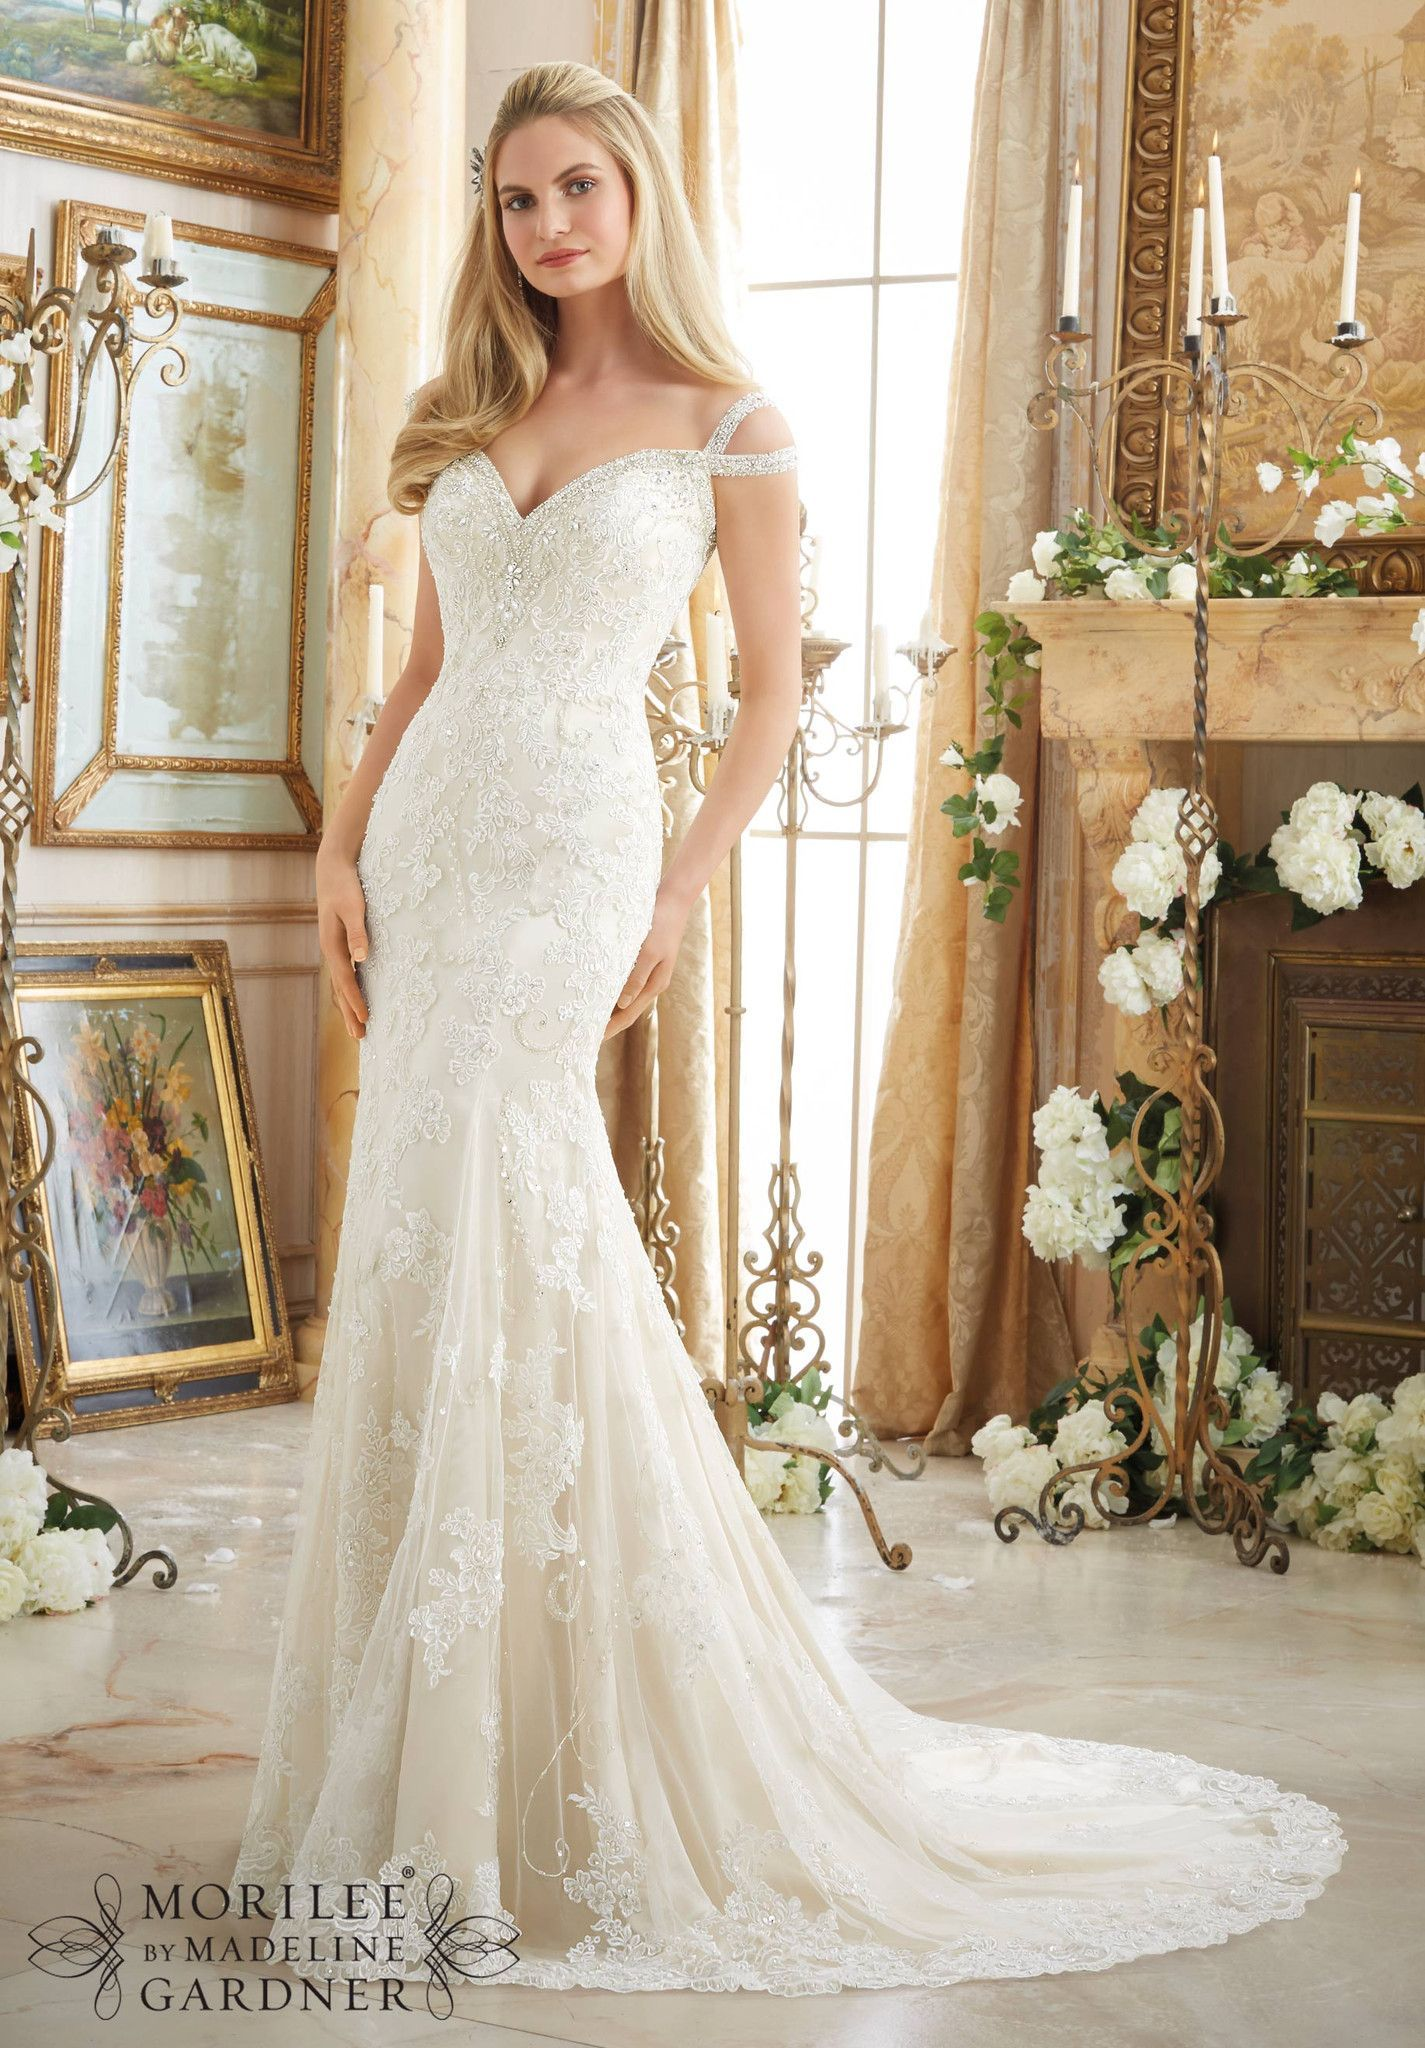 Blog | Pinterest | Mori lee, Bridal gowns and Gowns